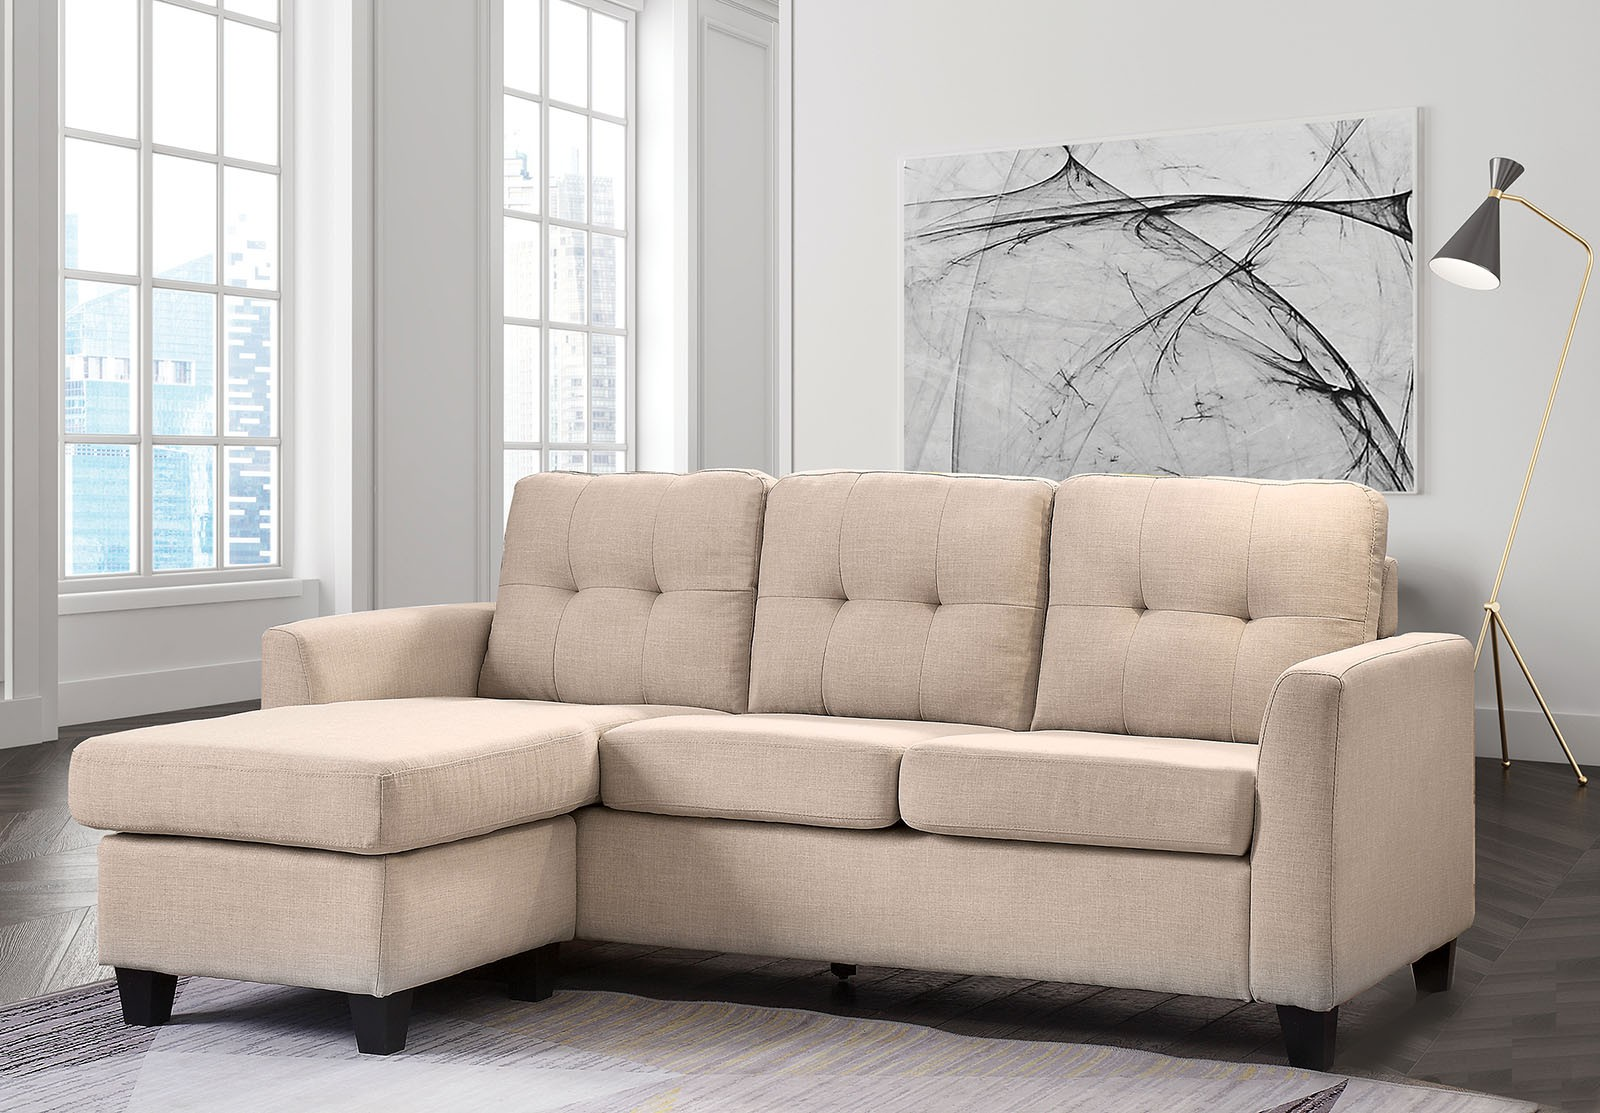 Marvelous The Macey Compact Sectional Beige Or Grey Beatyapartments Chair Design Images Beatyapartmentscom